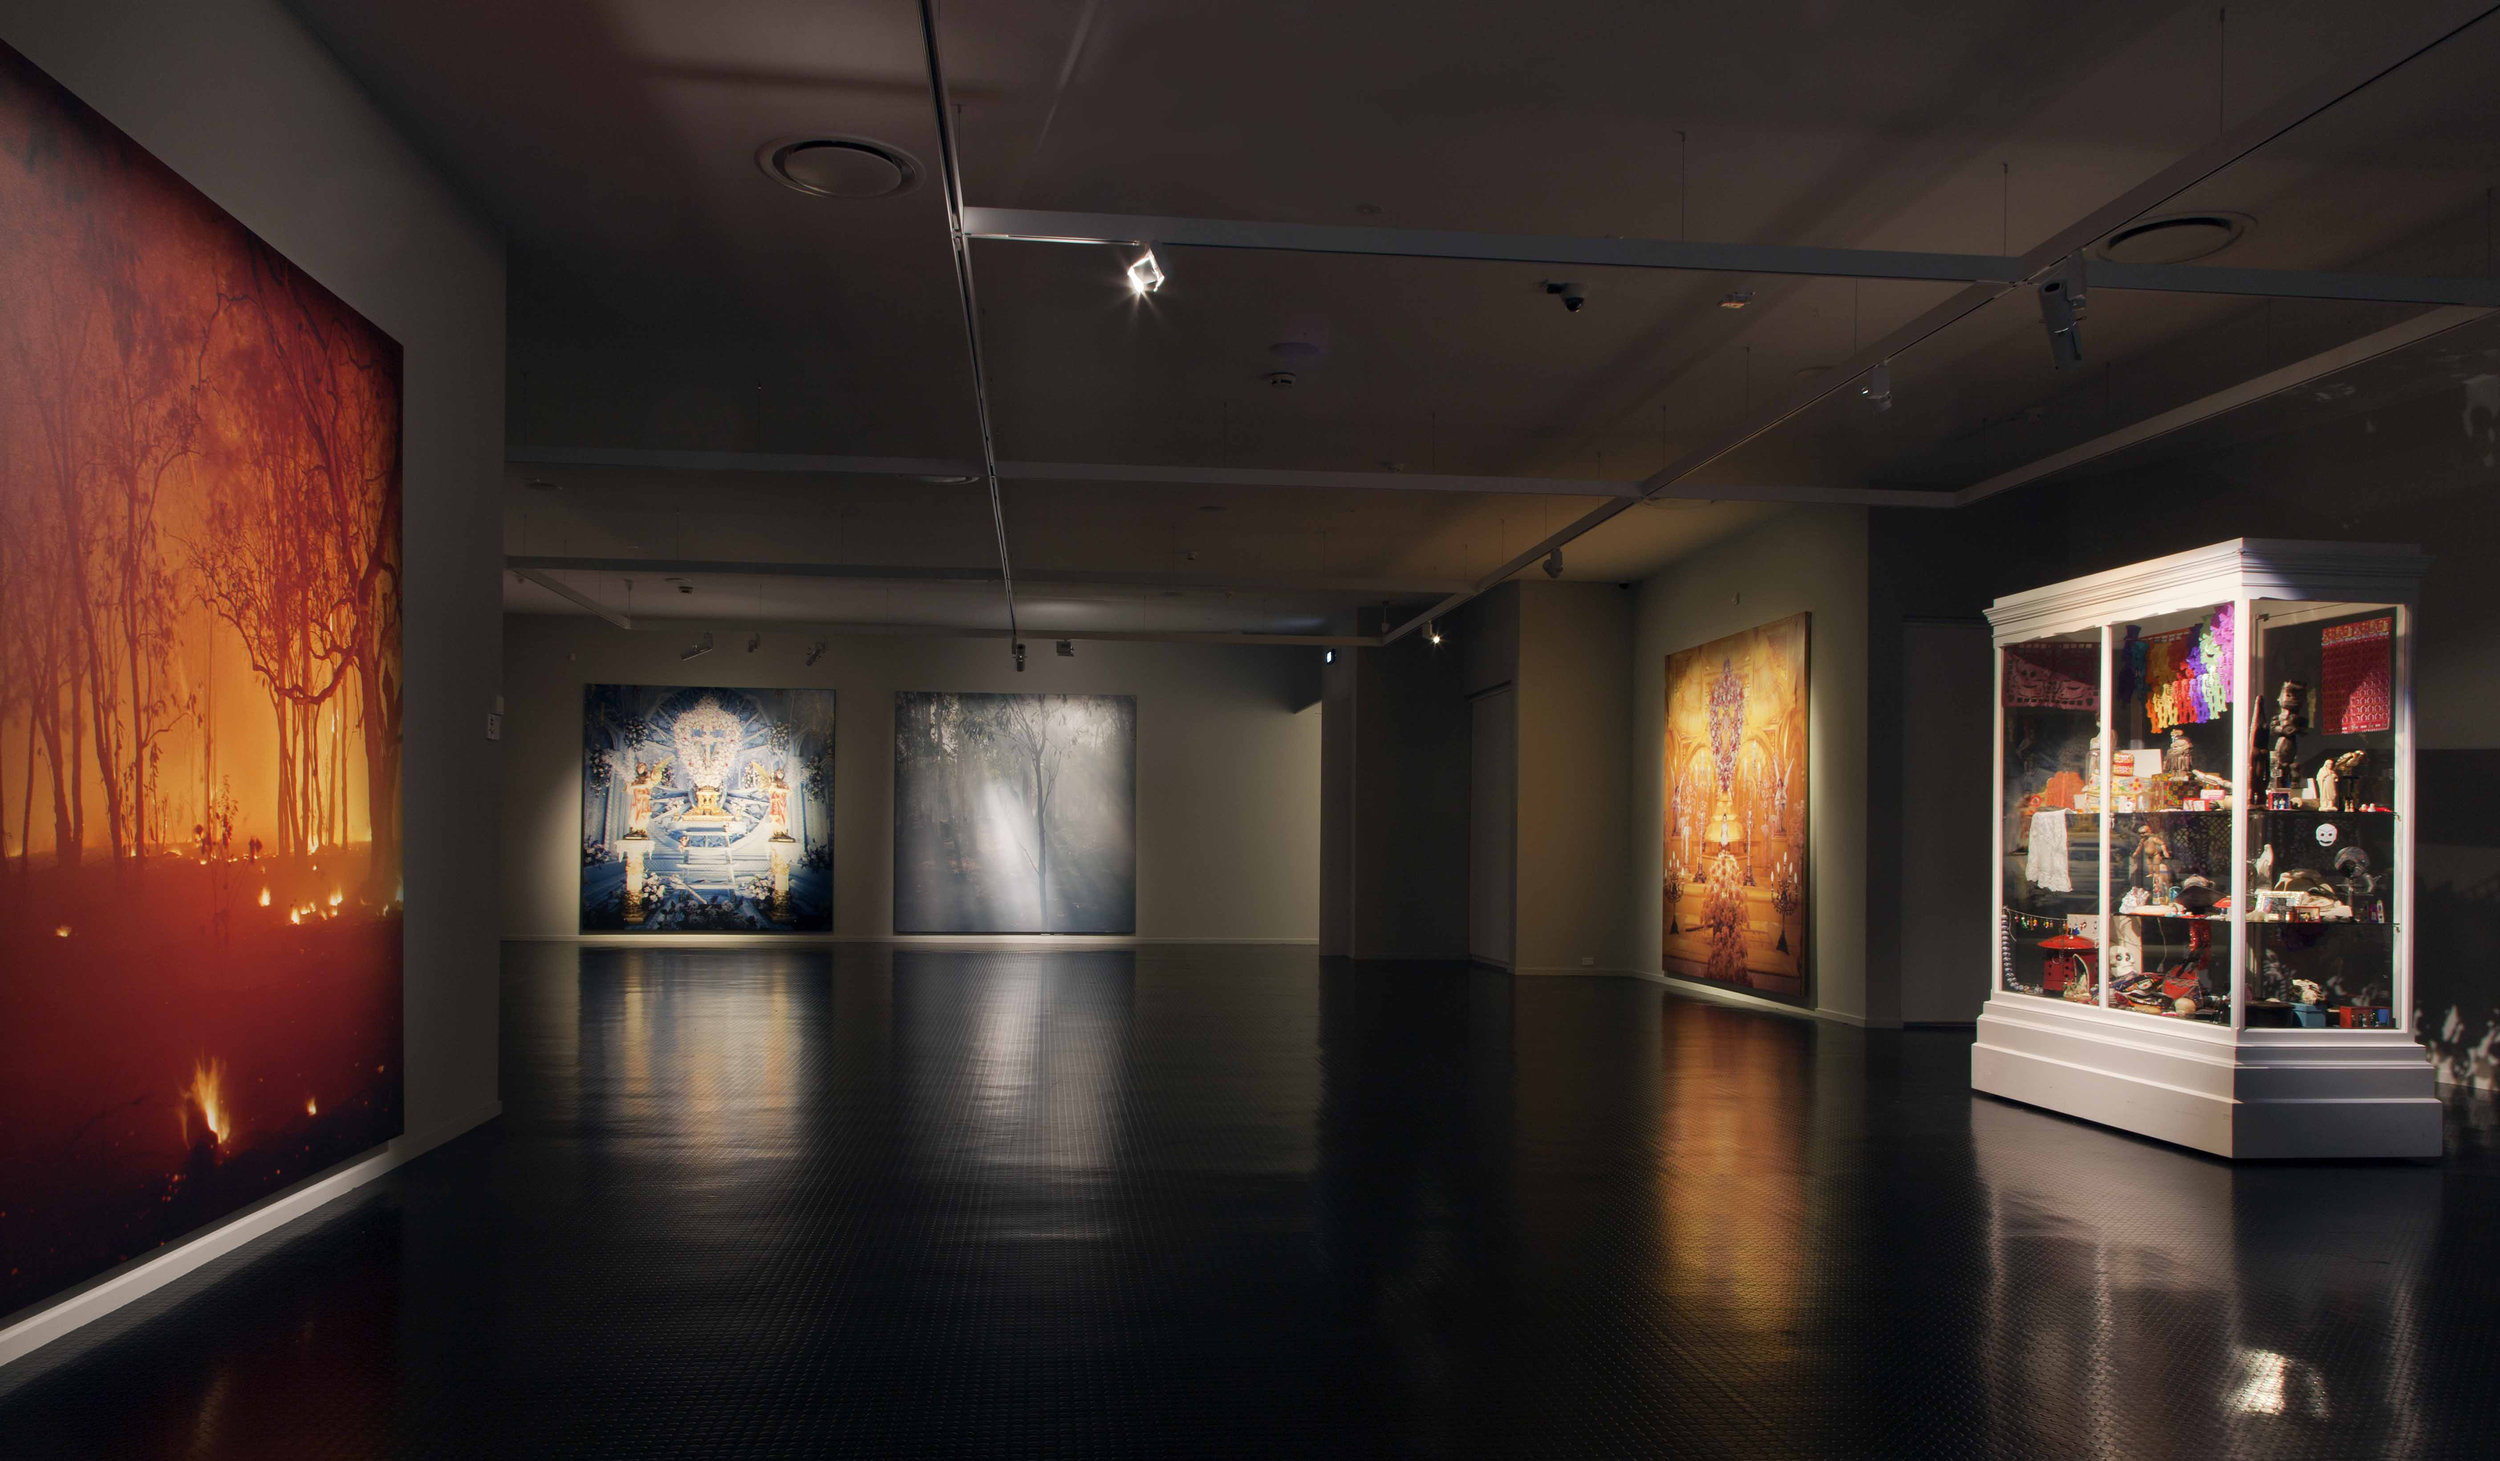 Culture, Spirit and Identity  , 8 photographic works 3x 3meters each, 2 display cabinets showing religious items; installation view, Warrnambool Art Gallery/Australia 2016